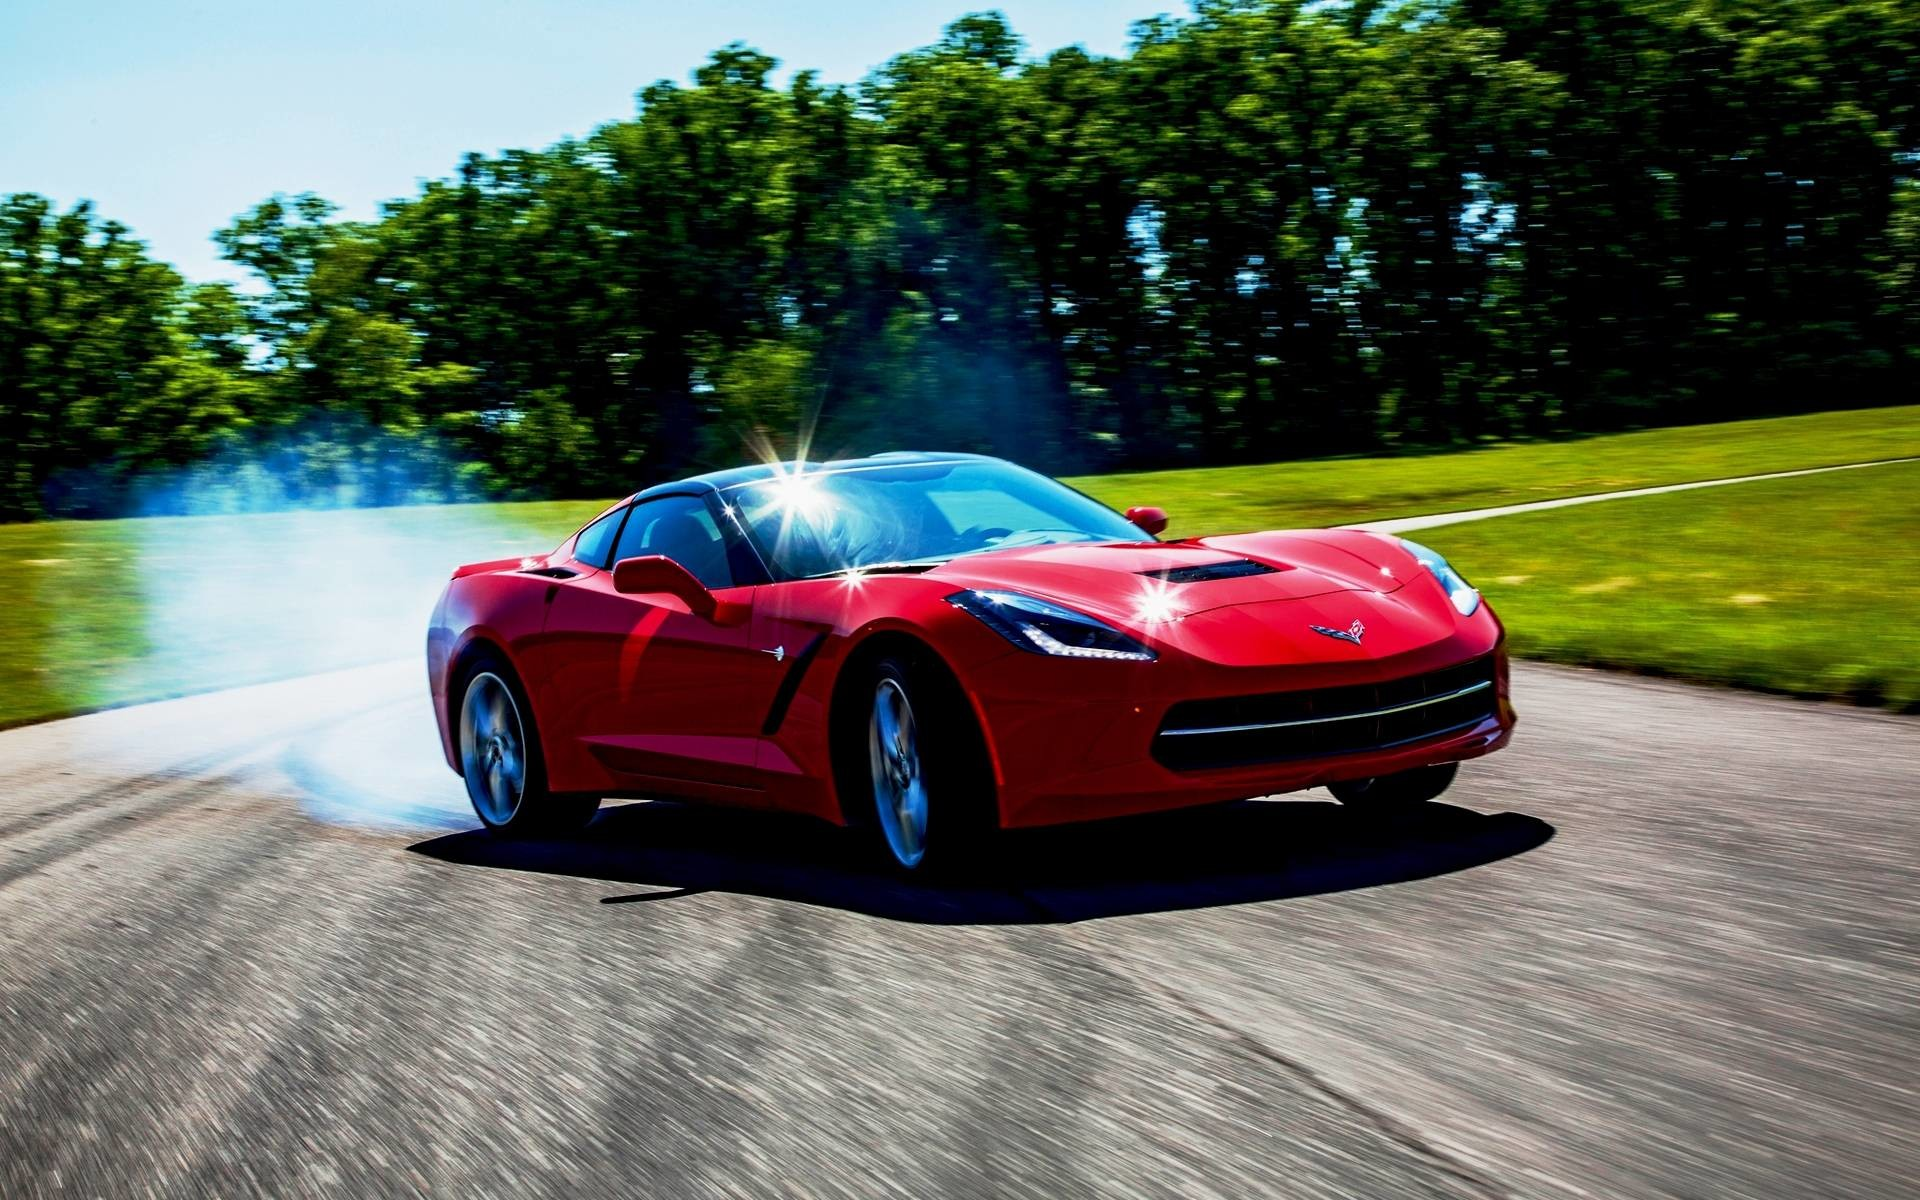 corvette Check out the chevrolet corvette review at caranddrivercom use our car buying guide to research chevrolet corvette prices, specs, photos, videos, and more.